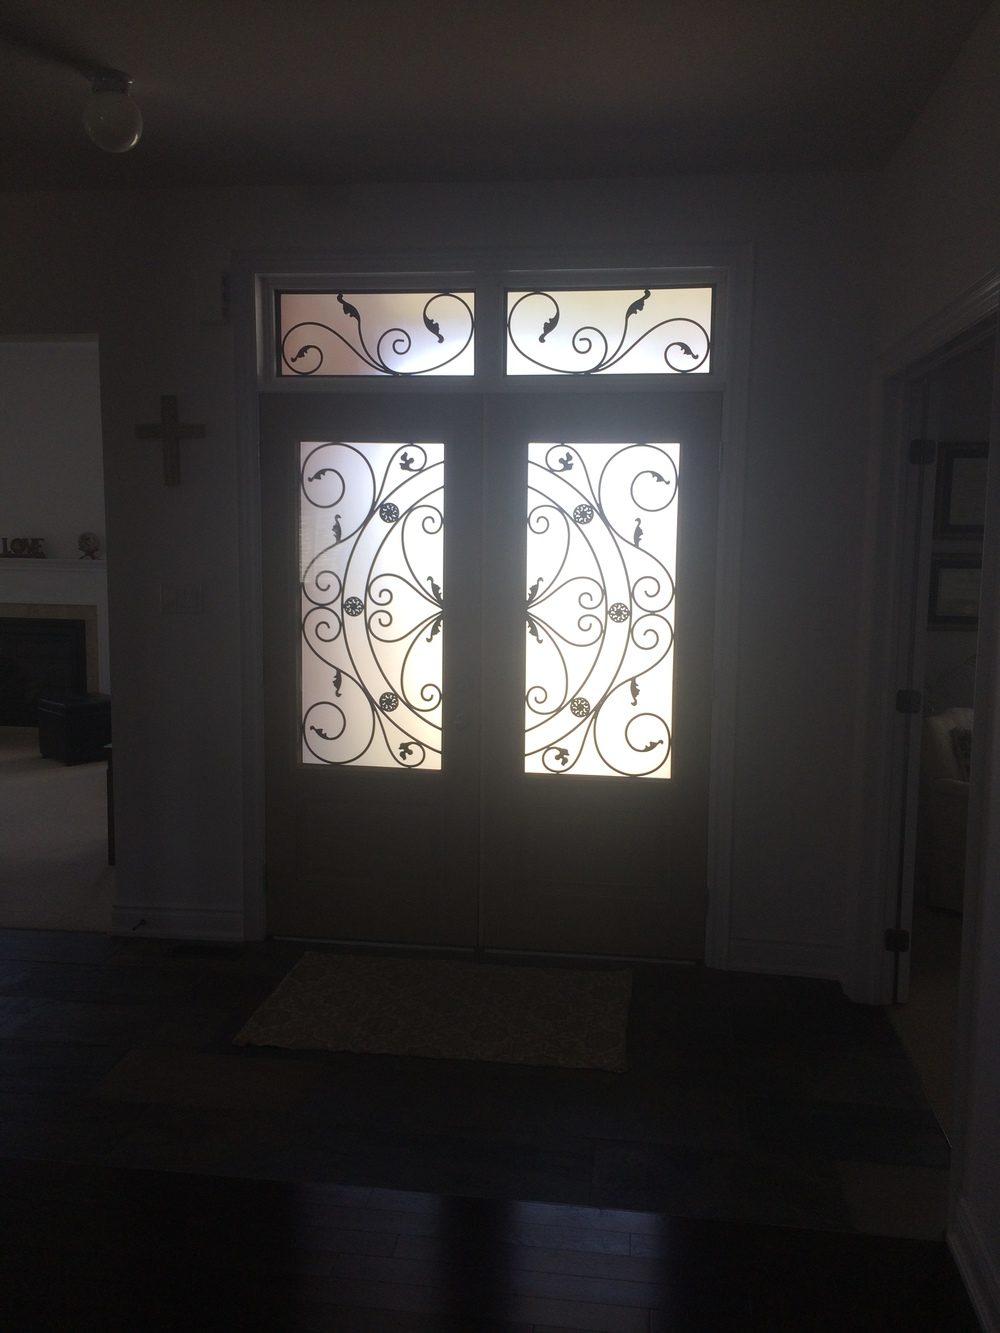 Campbellsford-Wrought-Iron-Glass-Door-Inserts-Markham-Ontario